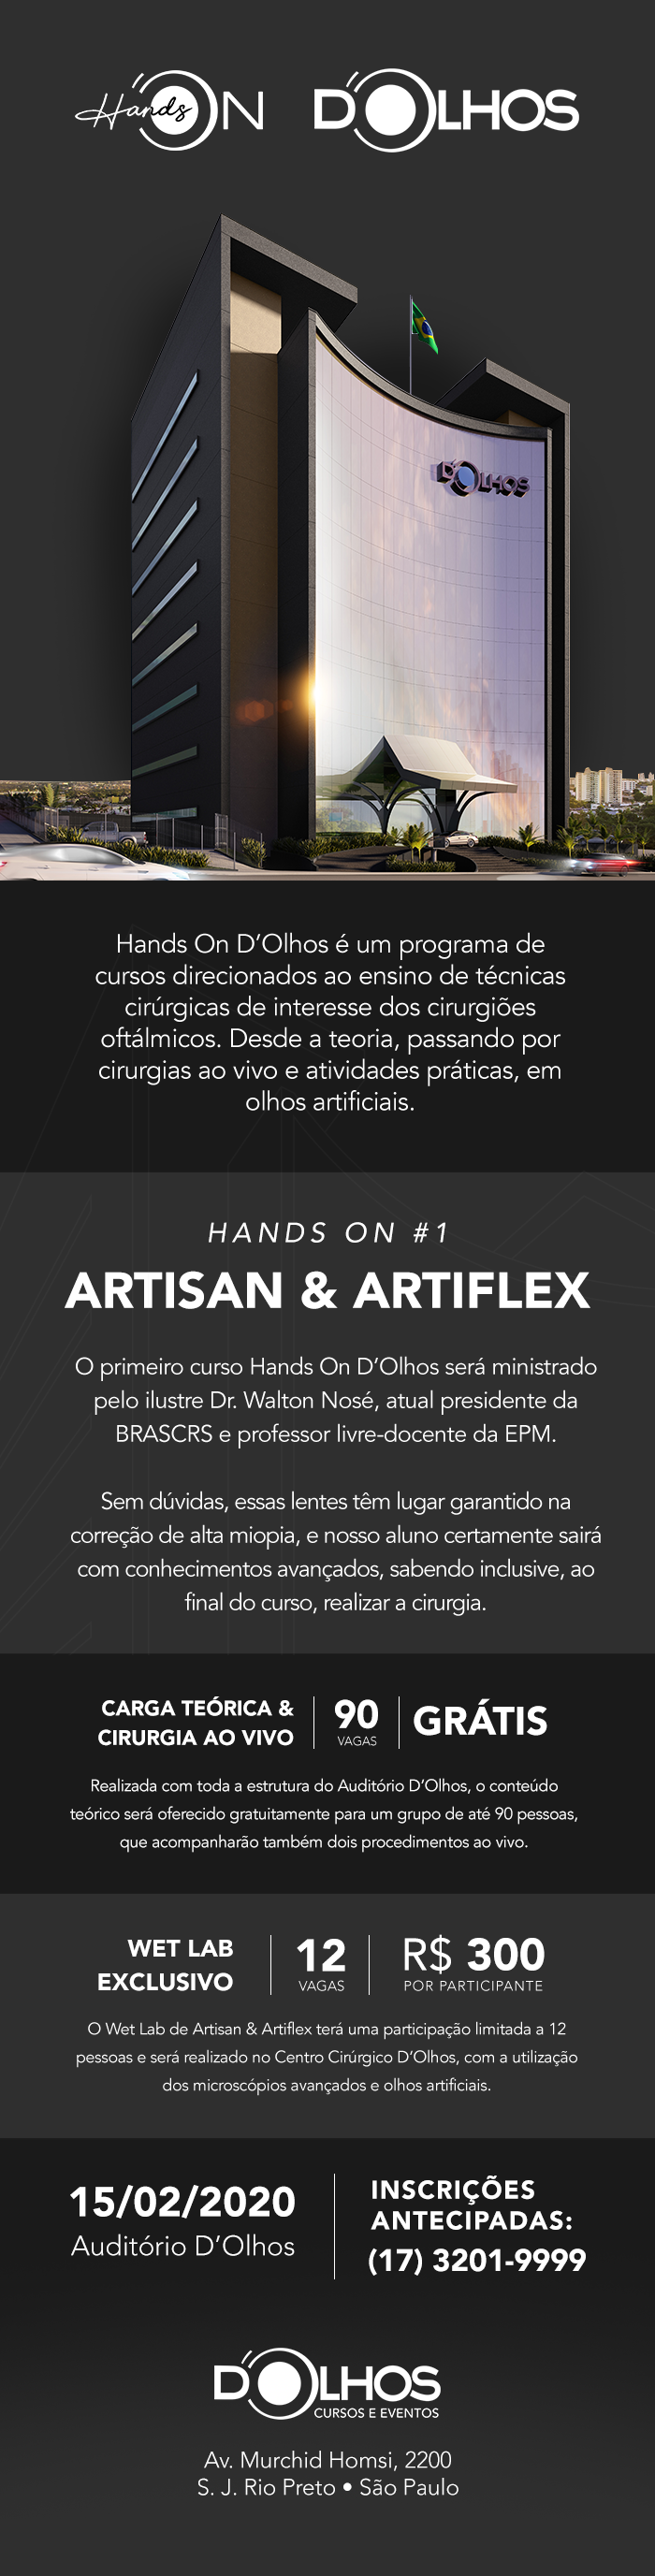 Hands On - D'Olhos Hospital Dia